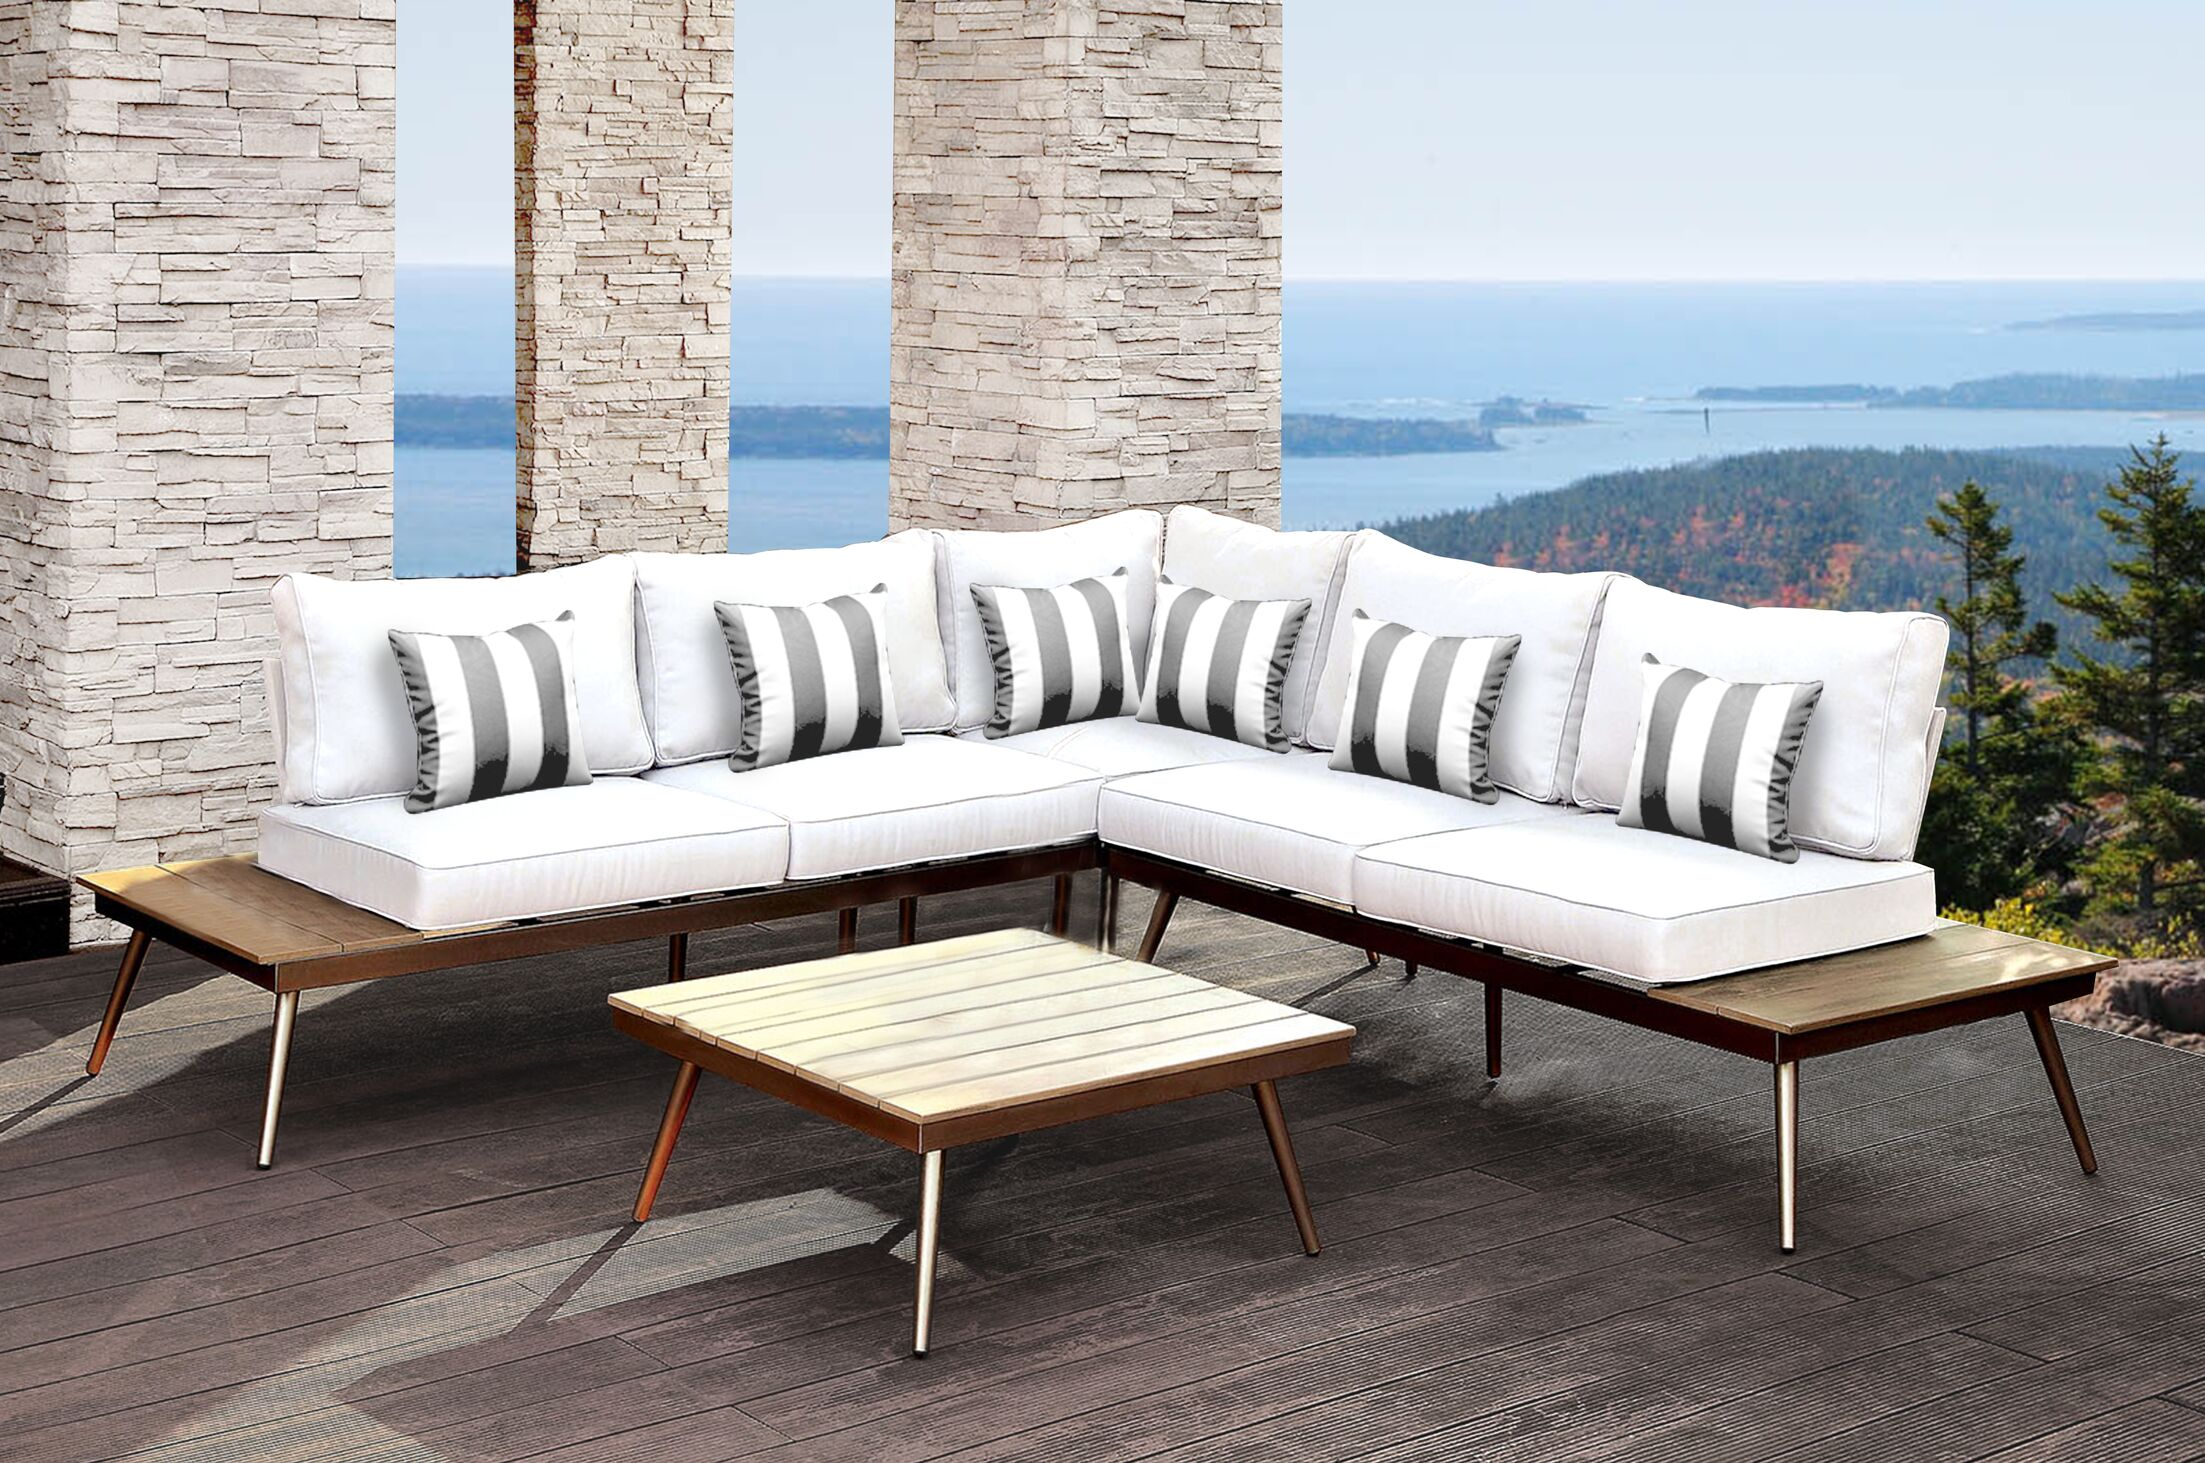 Wisner Outdoor Modular 3 Piece Sectional Set with Cushions Accent Pillow Fabric: Gray/White Stripe, Cushion Color: White/Gray